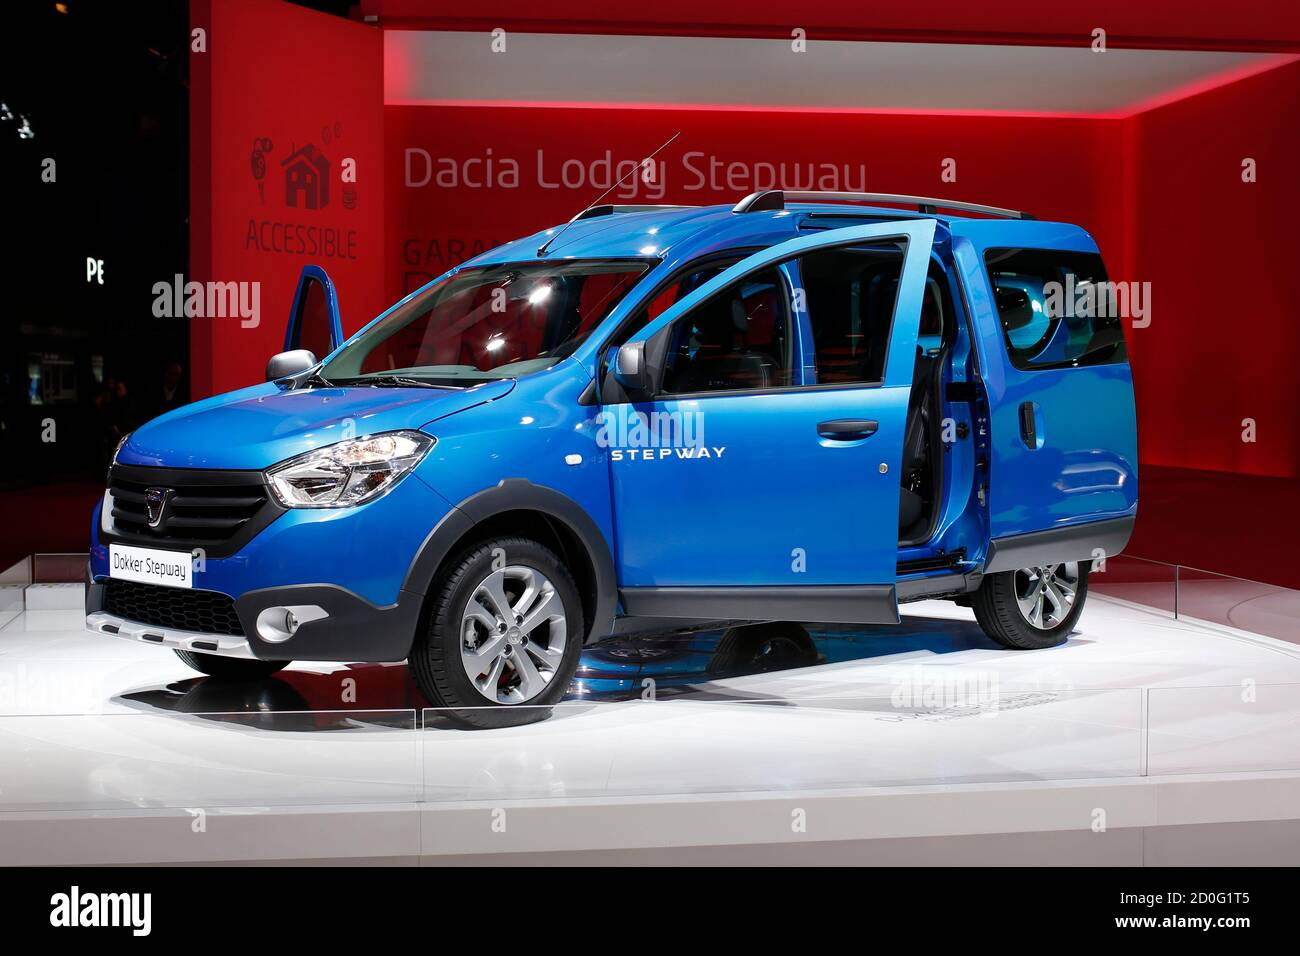 https www alamy com the dacia dokker stepway is displayed on media day at the paris mondial de lautomobile october 2 2014 the paris auto show opens its doors to the public from october 4 to october 19 reutersbenoit tessier france tags transport business image378980789 html